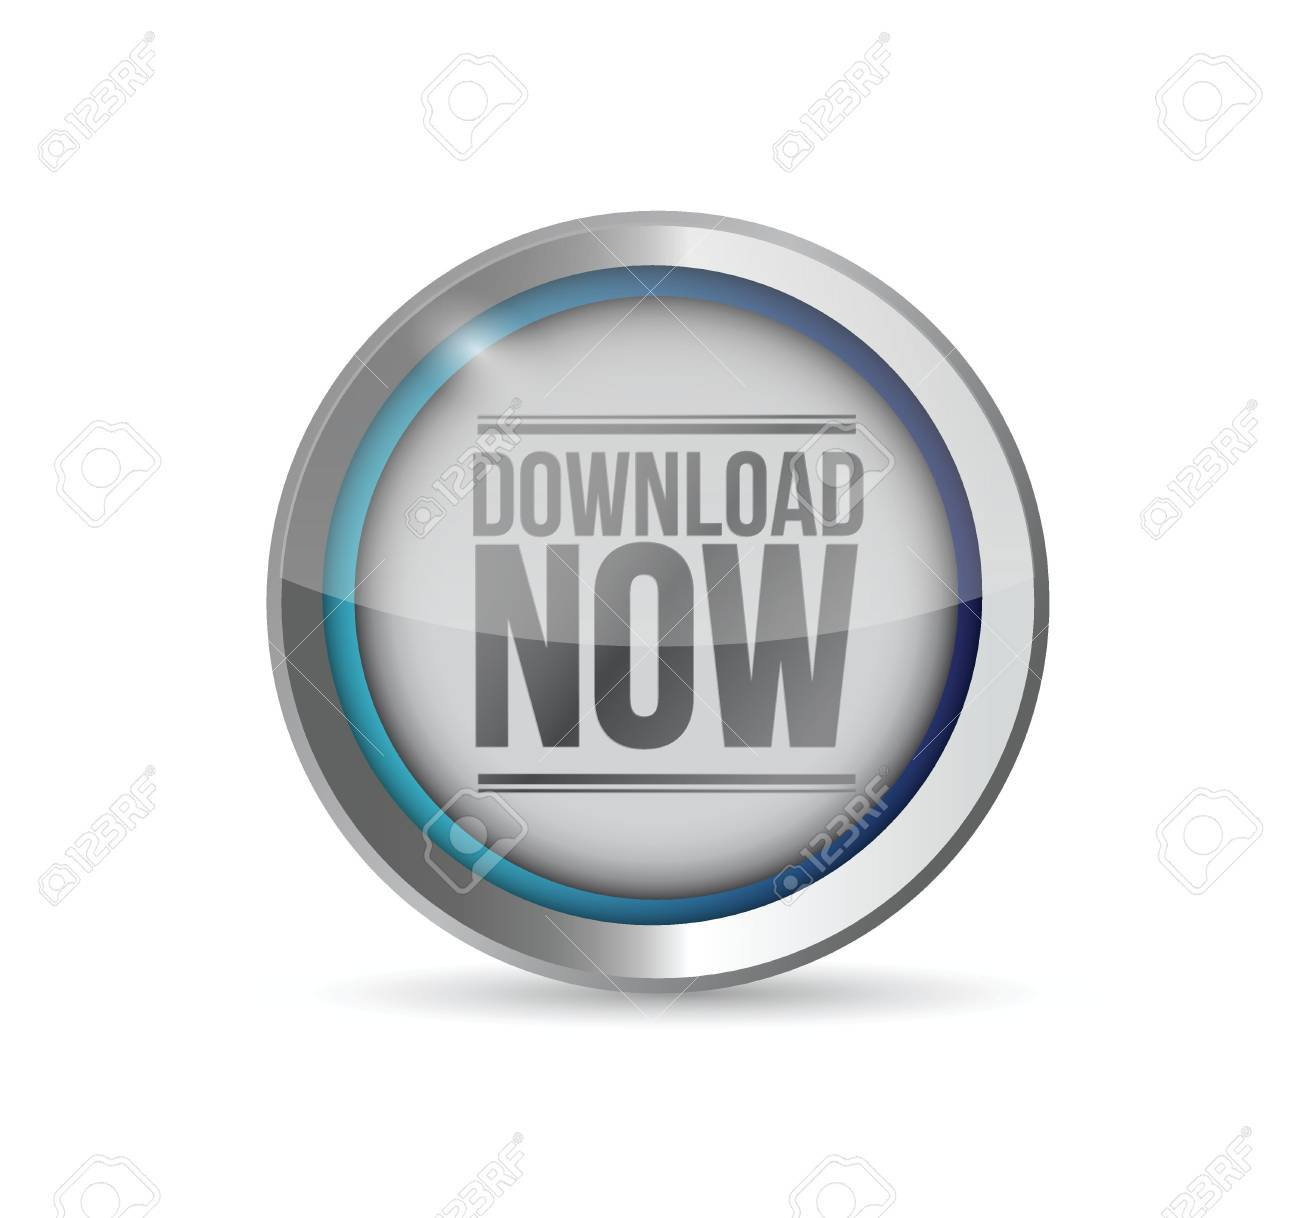 stylish Download now button. illustration design graphic Stock Vector -  20387301